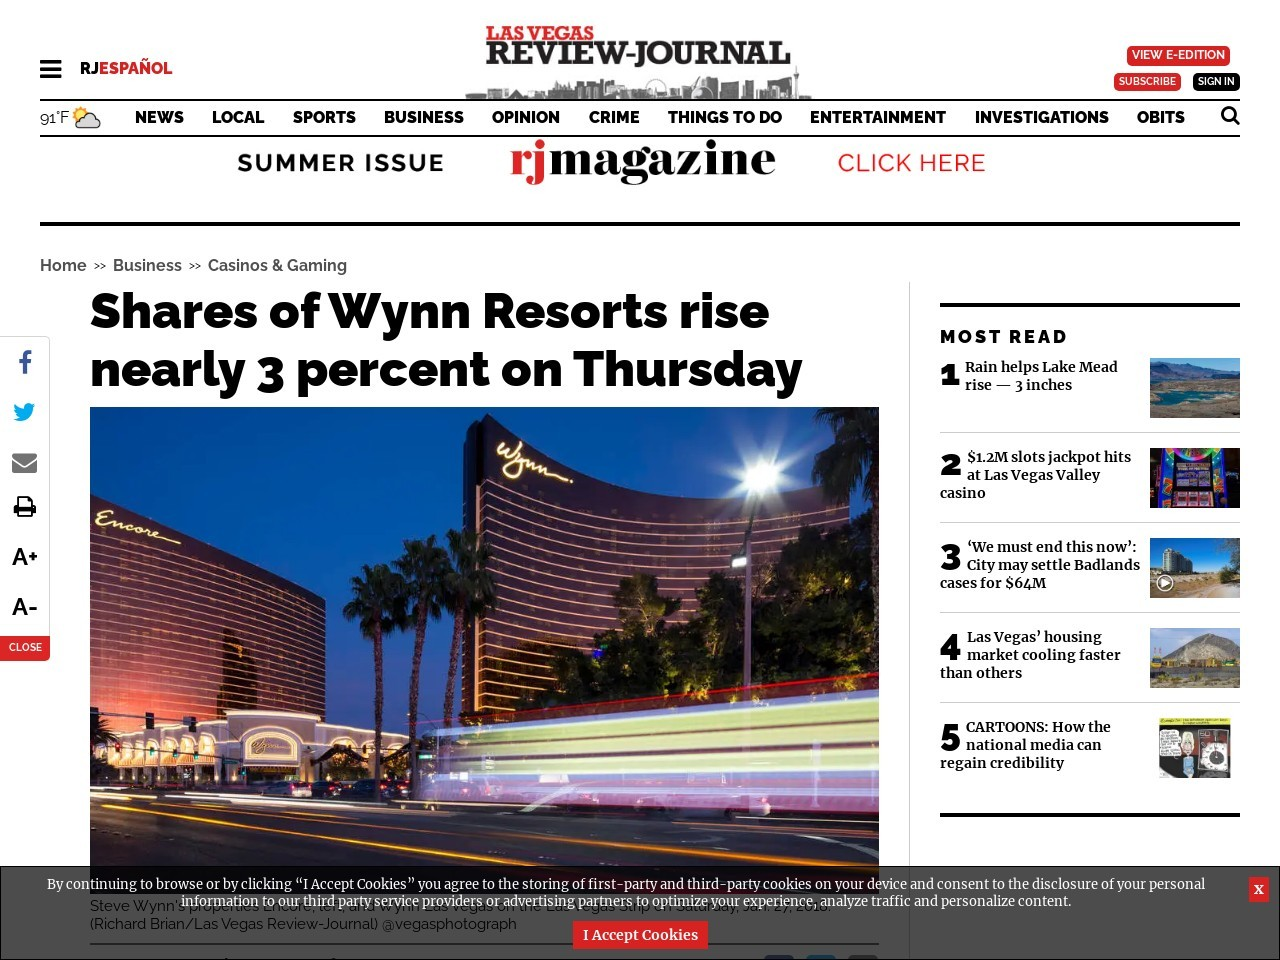 Shares of Wynn Resorts rise nearly 3 percent on Thursday